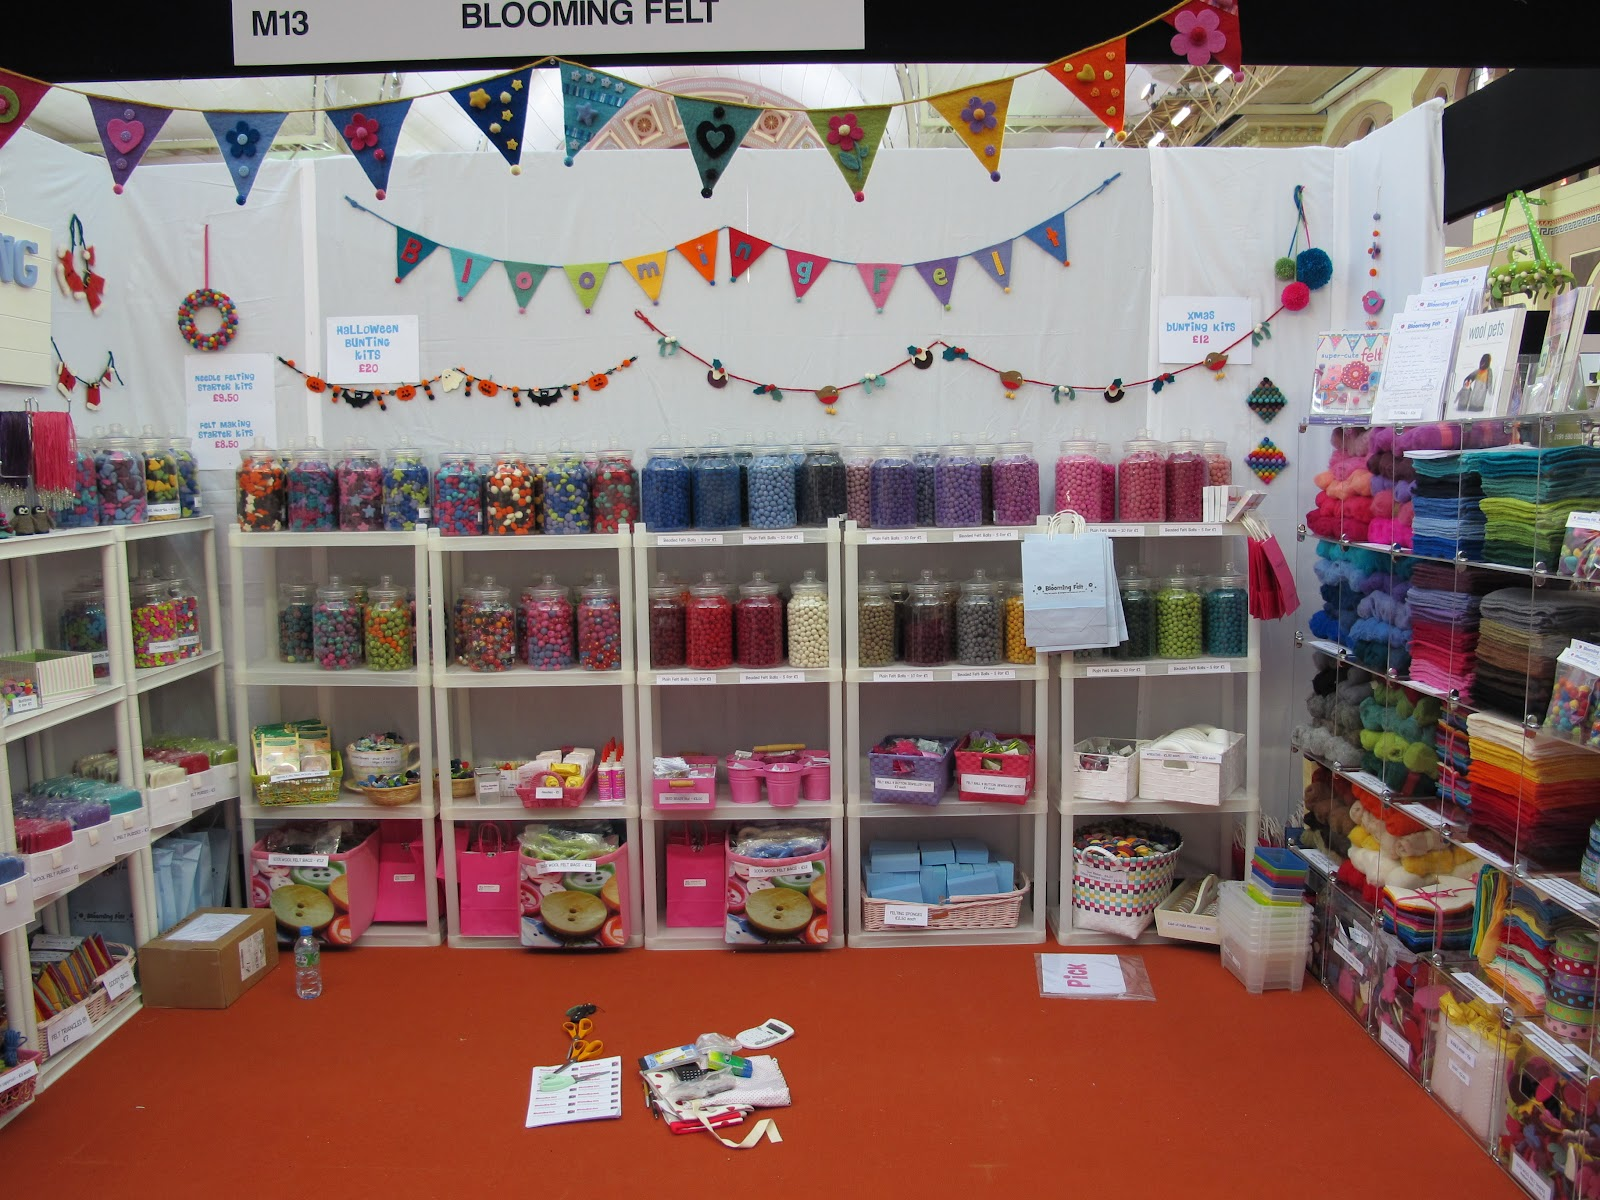 Knitting And Stitching Show Floor Plan : Blooming Felt - News from Shedquarters: Knitting & Stitching Show